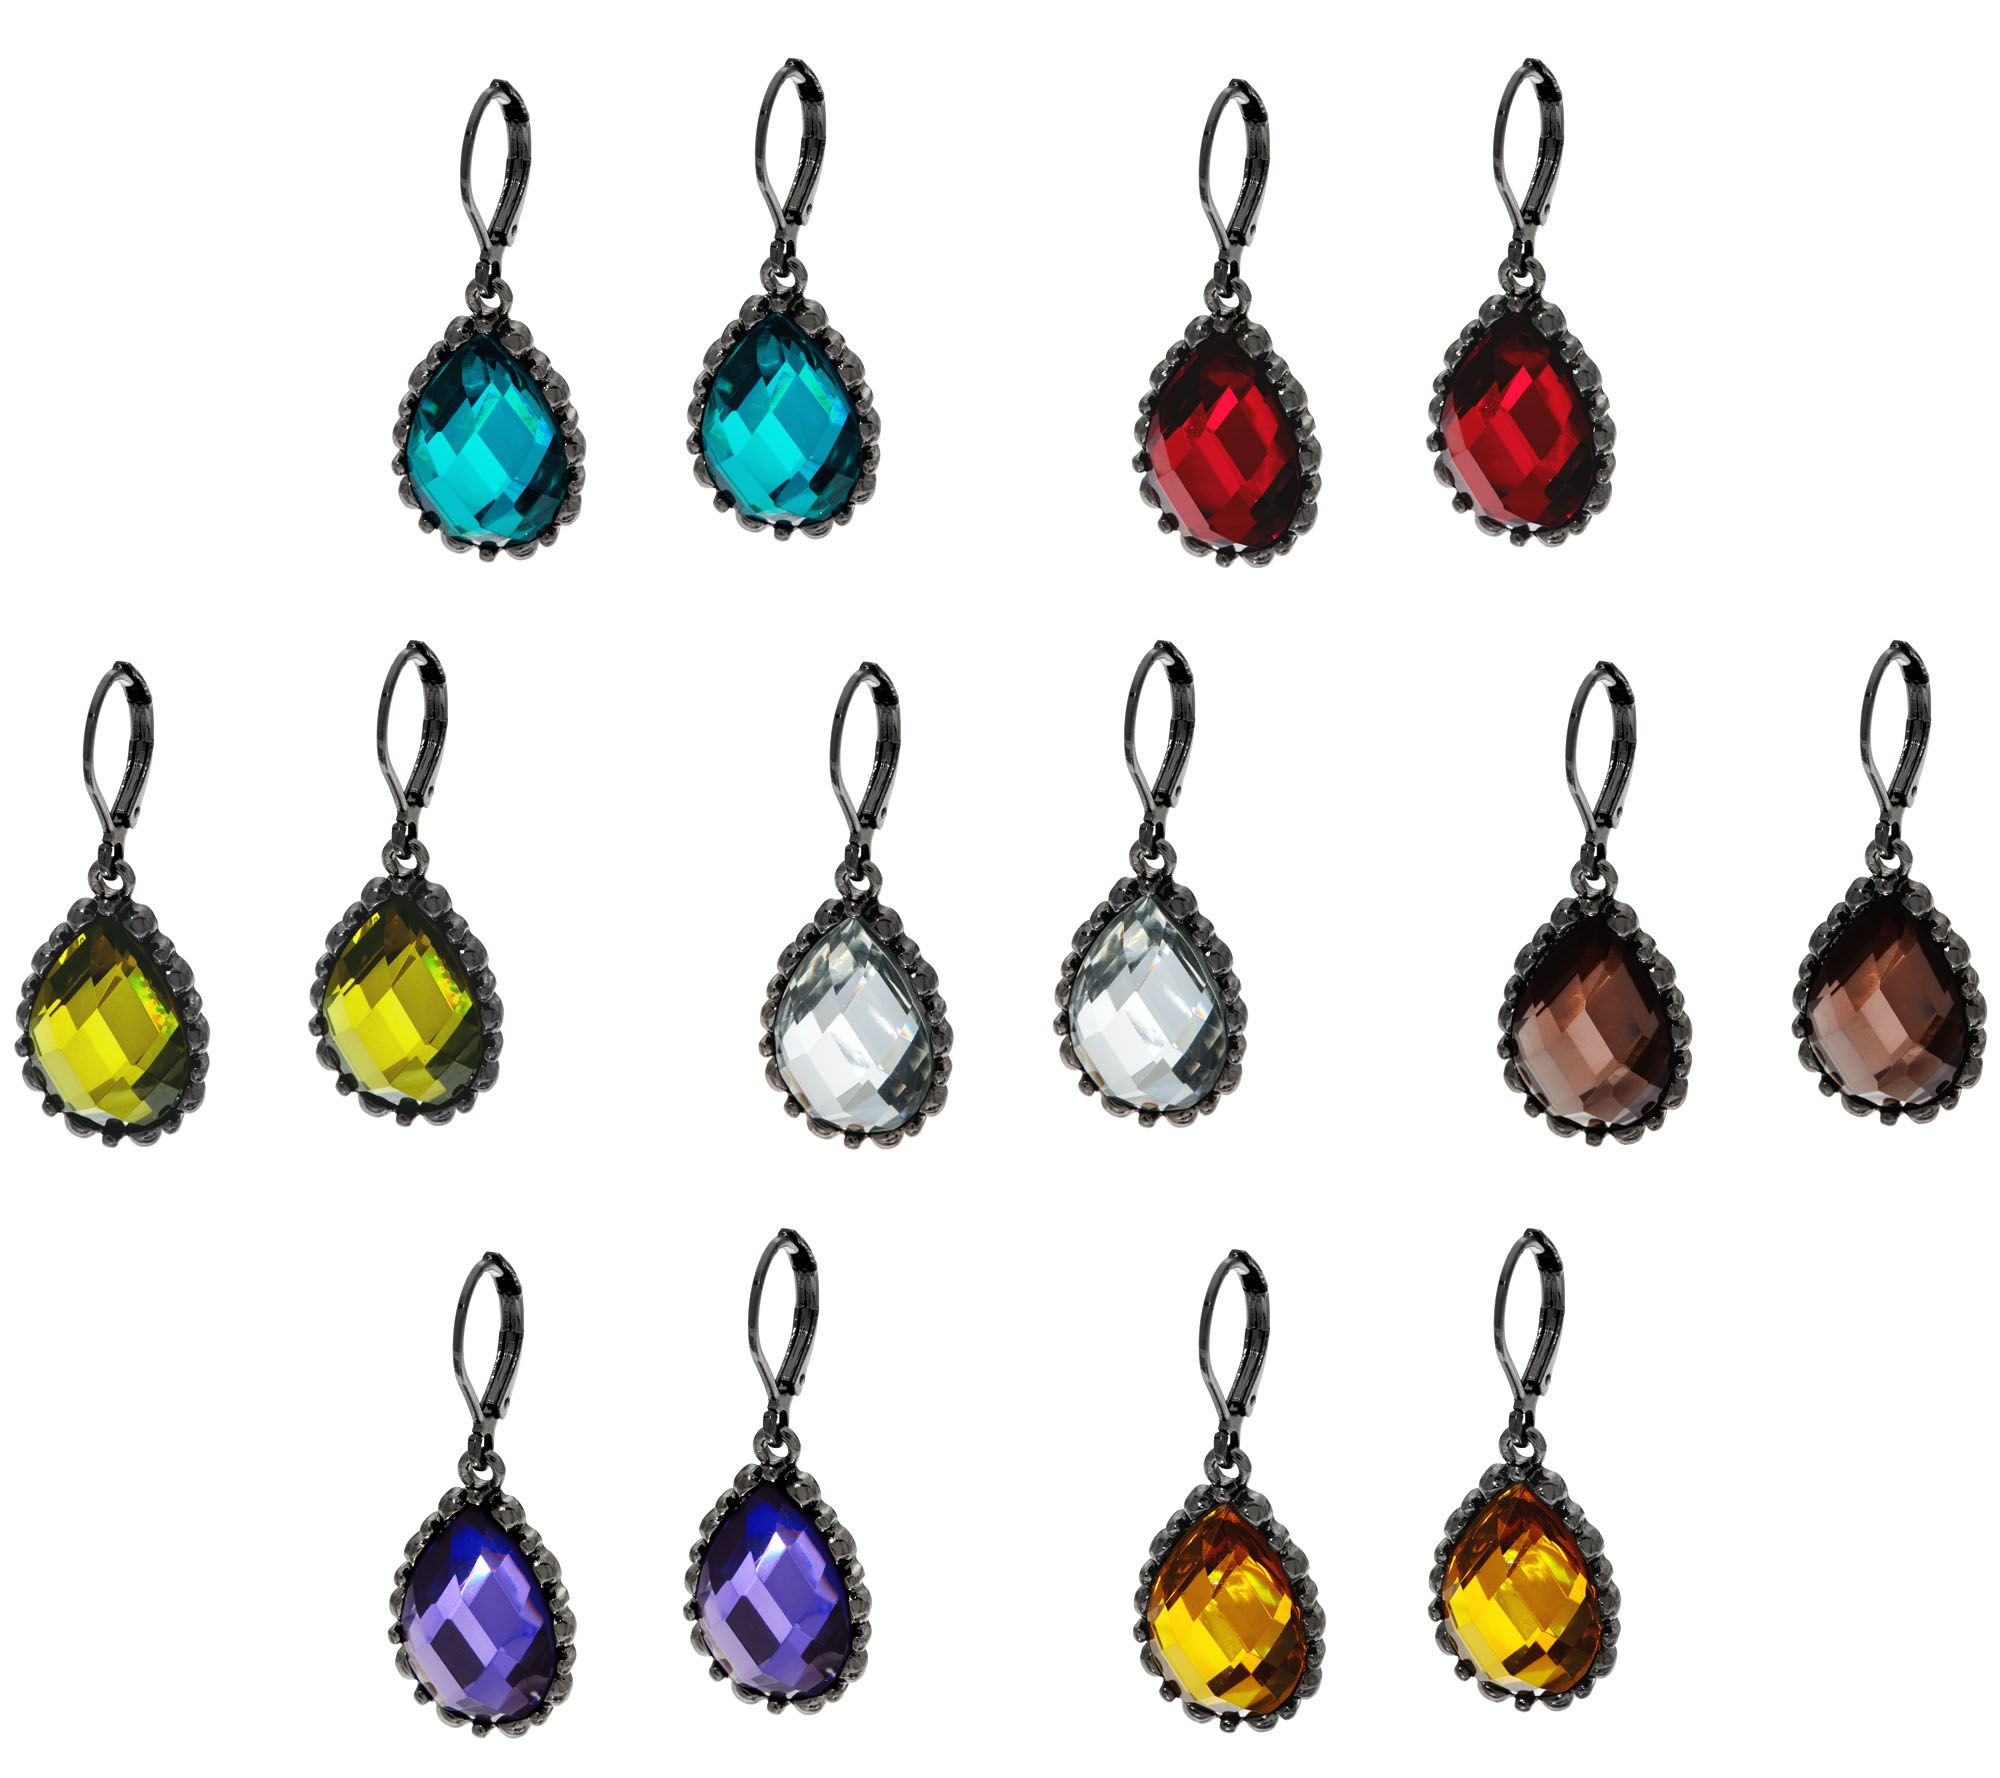 7 Faceted Teardrop Lever Back Earrings  Page 1 — Qvc